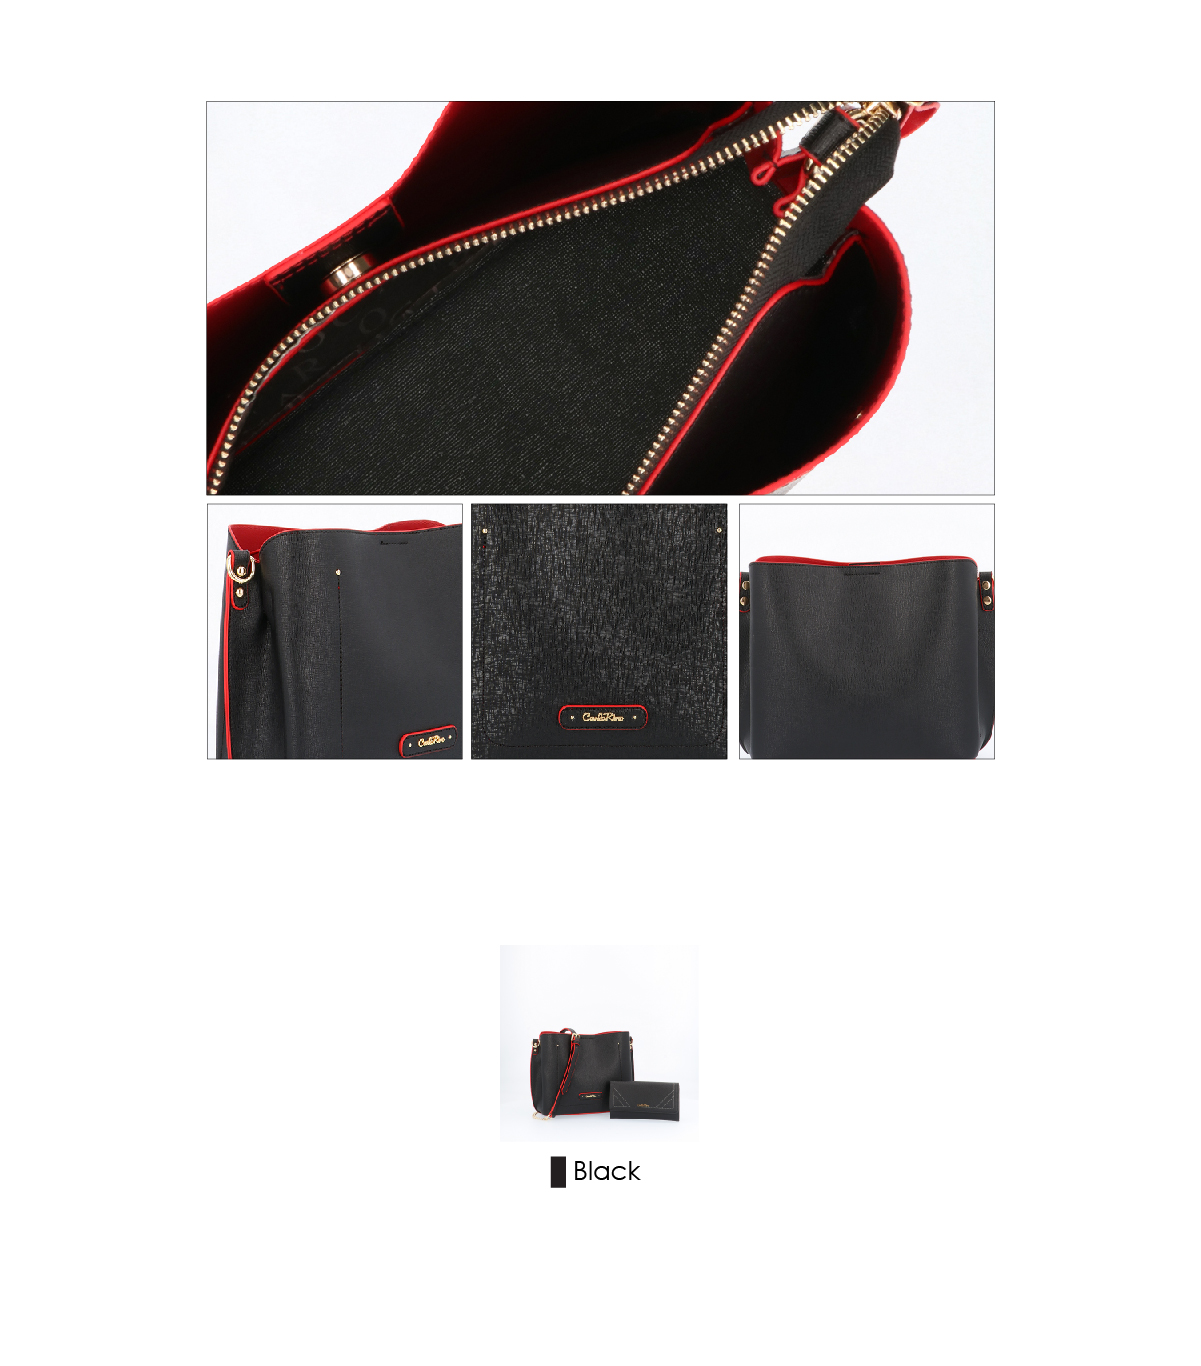 0303355 016 08 03 - Smooth Carrier 2-in-1 Bag and Wallet Set